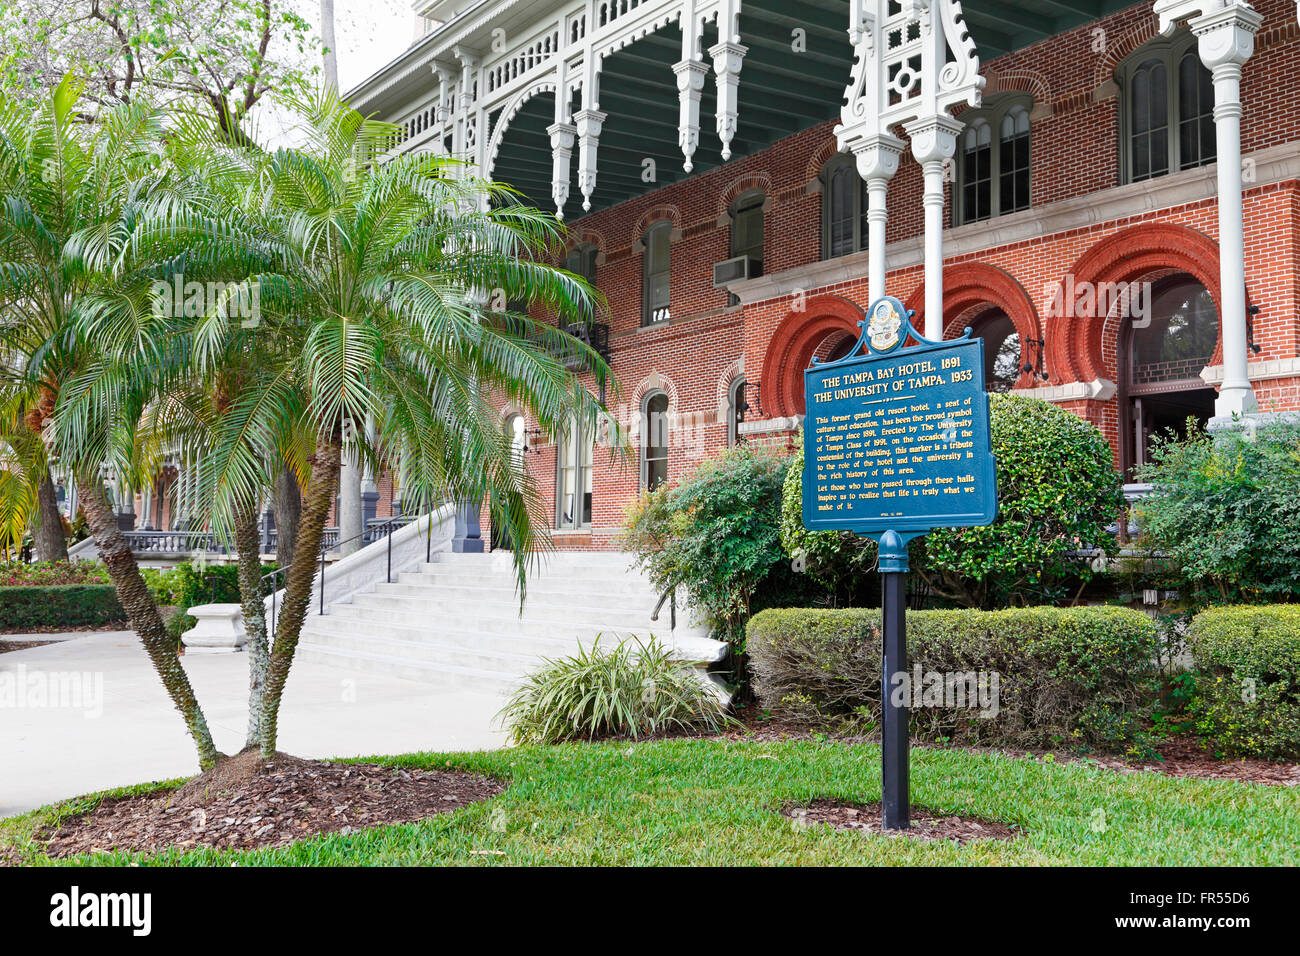 University of Tampa in the old resort Tampa Bay Hotel that was created by Henry B. Plant. - Stock Image